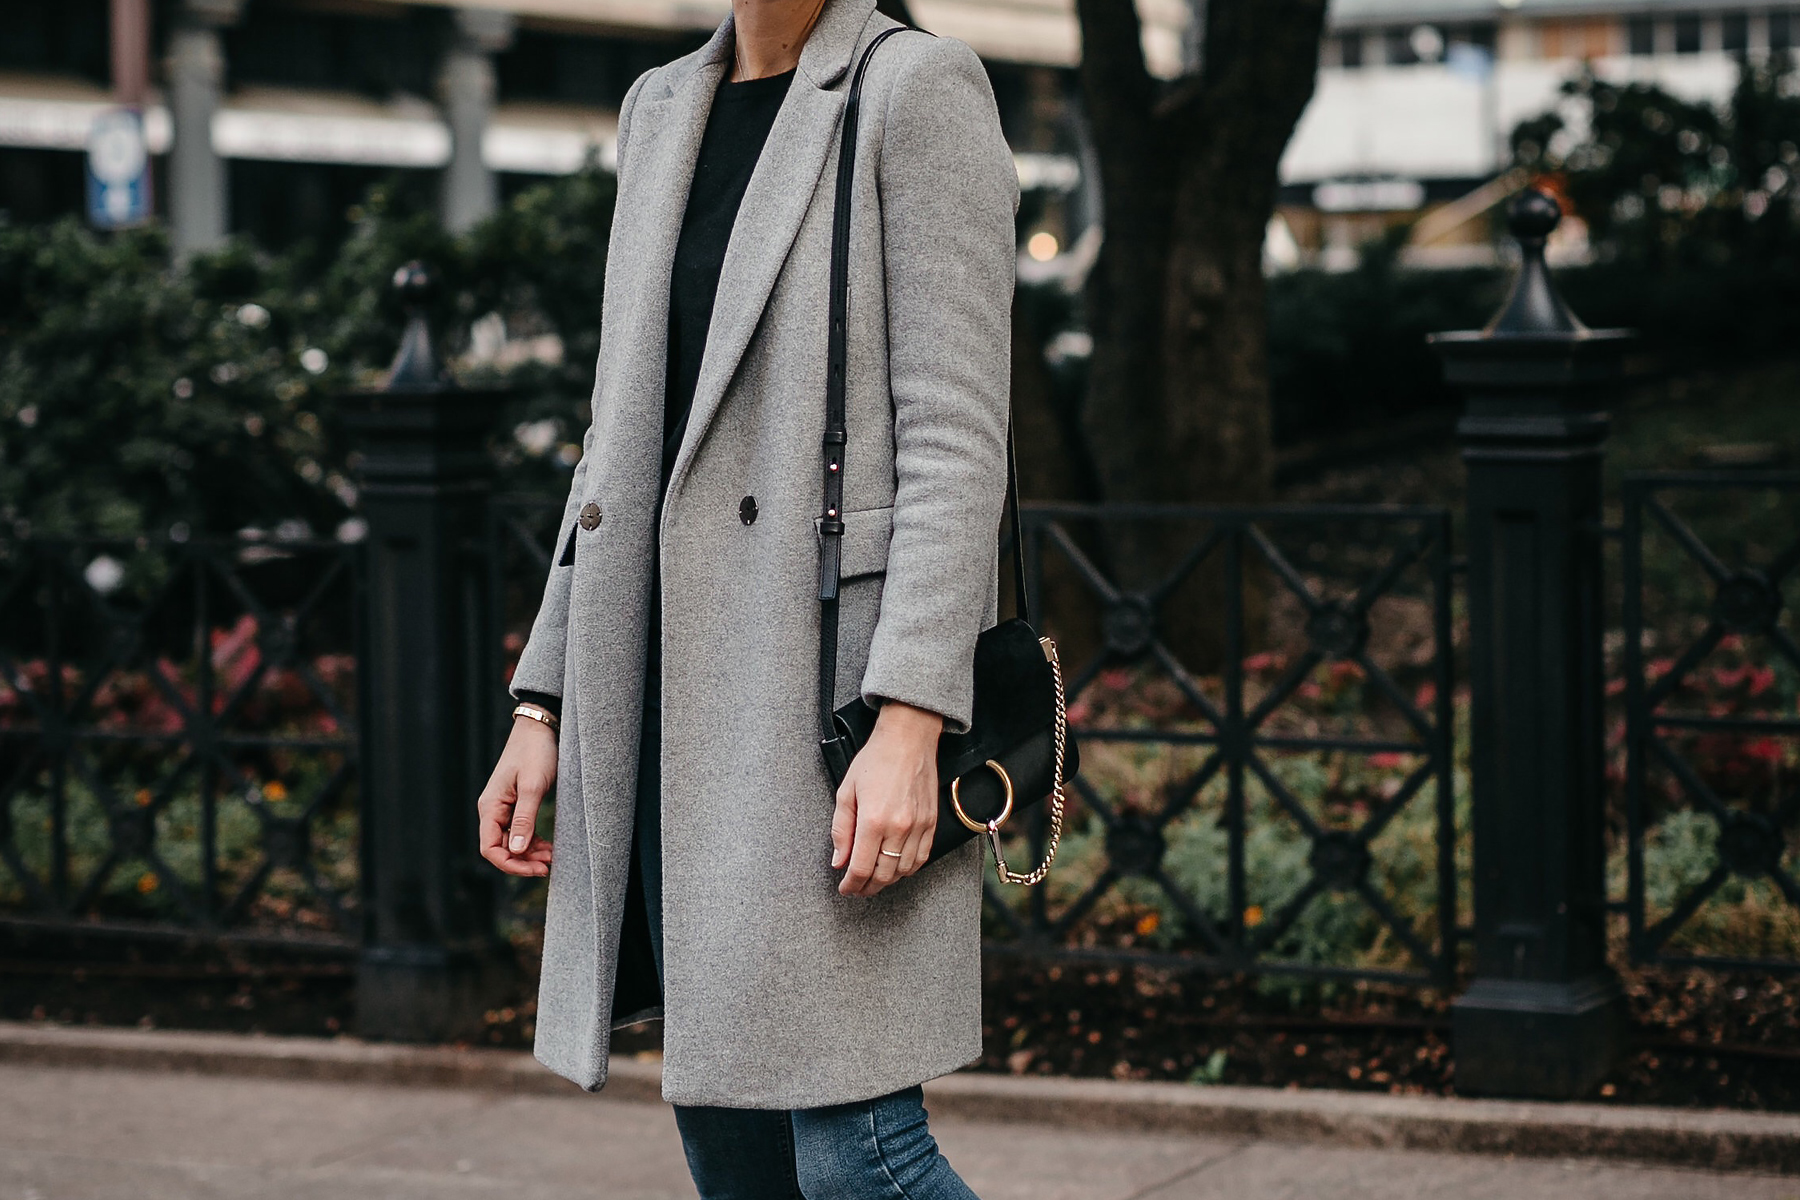 cf84a248 Zara Grey Wool Coat Chloe Faye Black Handbag Fashion Jackson Dallas Blogger  Fashion Blogger Street Style